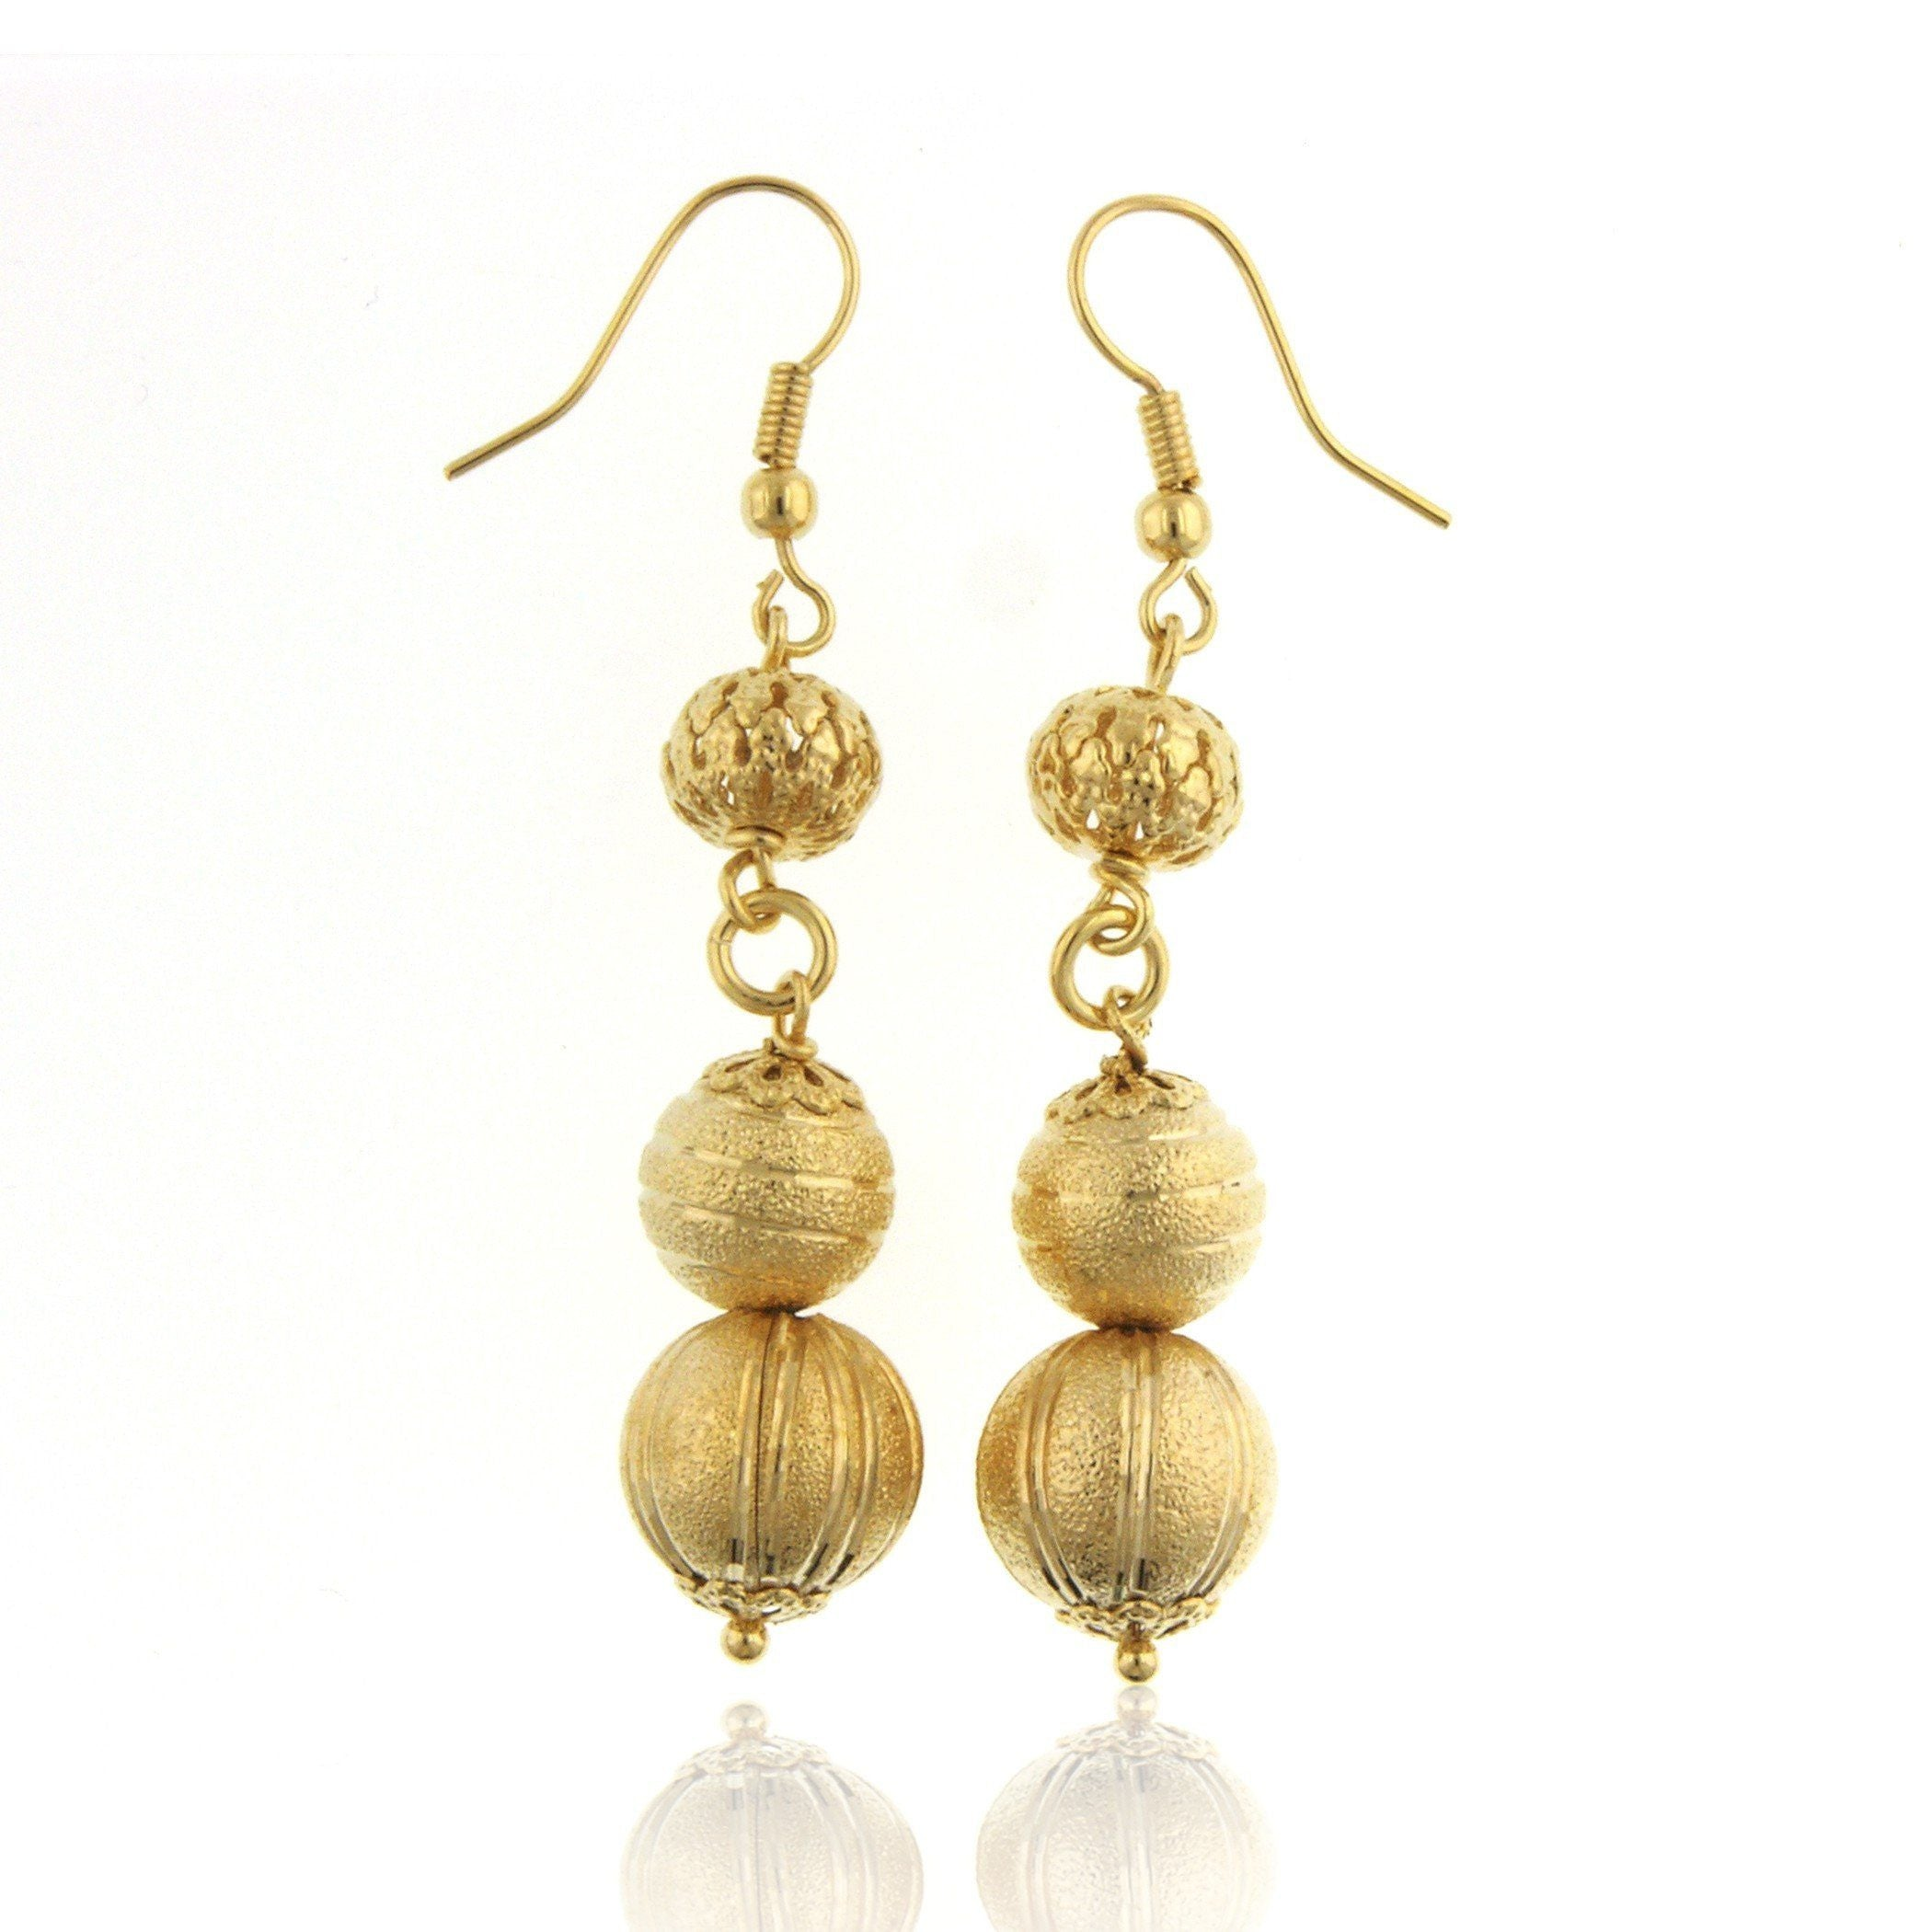 Grazie Italiana Collection: Gold-Plated Bronze Frosted Three-Bead Earrings